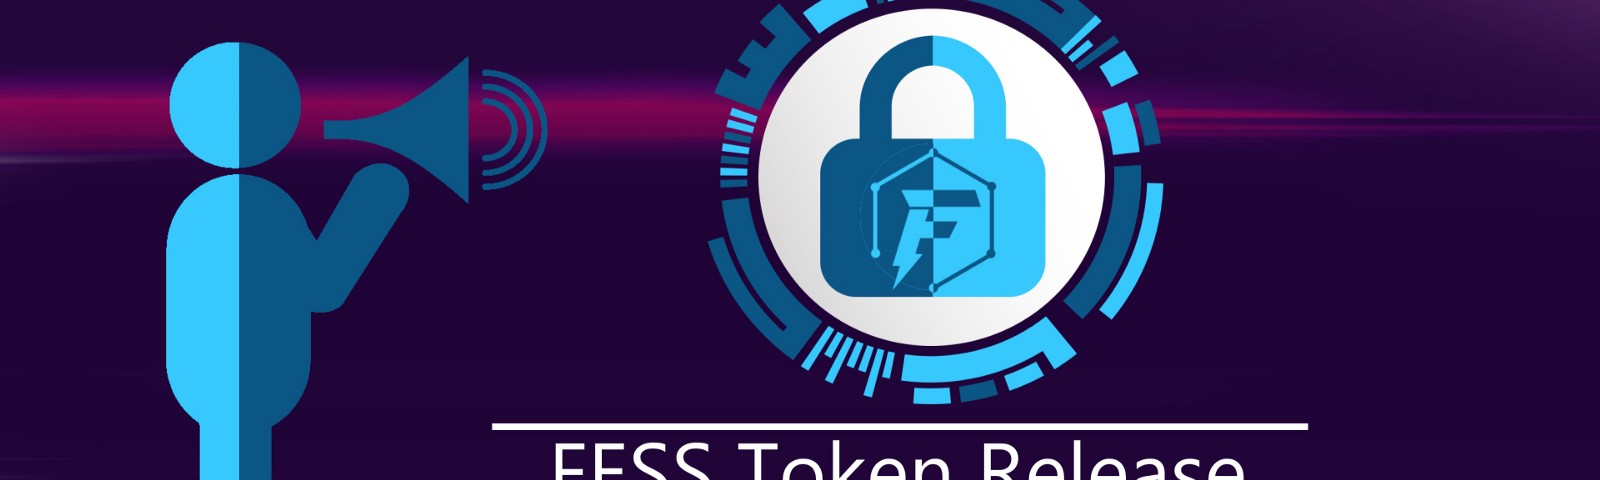 FESS Token Release Phase 2 Completed